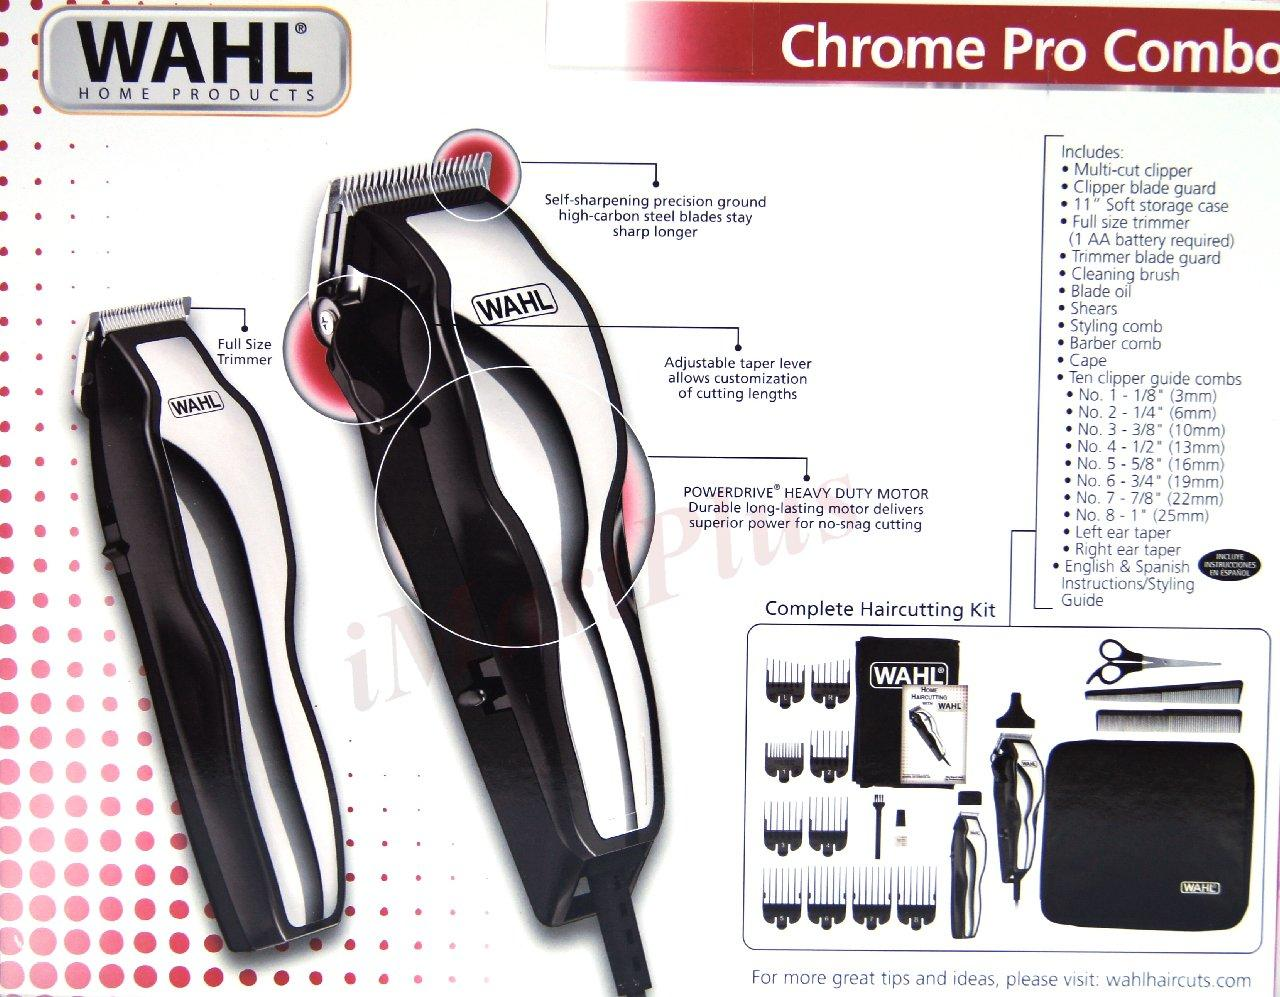 wahl chrome pro complete haircutting kit ge outdoor camping enbrighten led lantern 350 lumens 5119